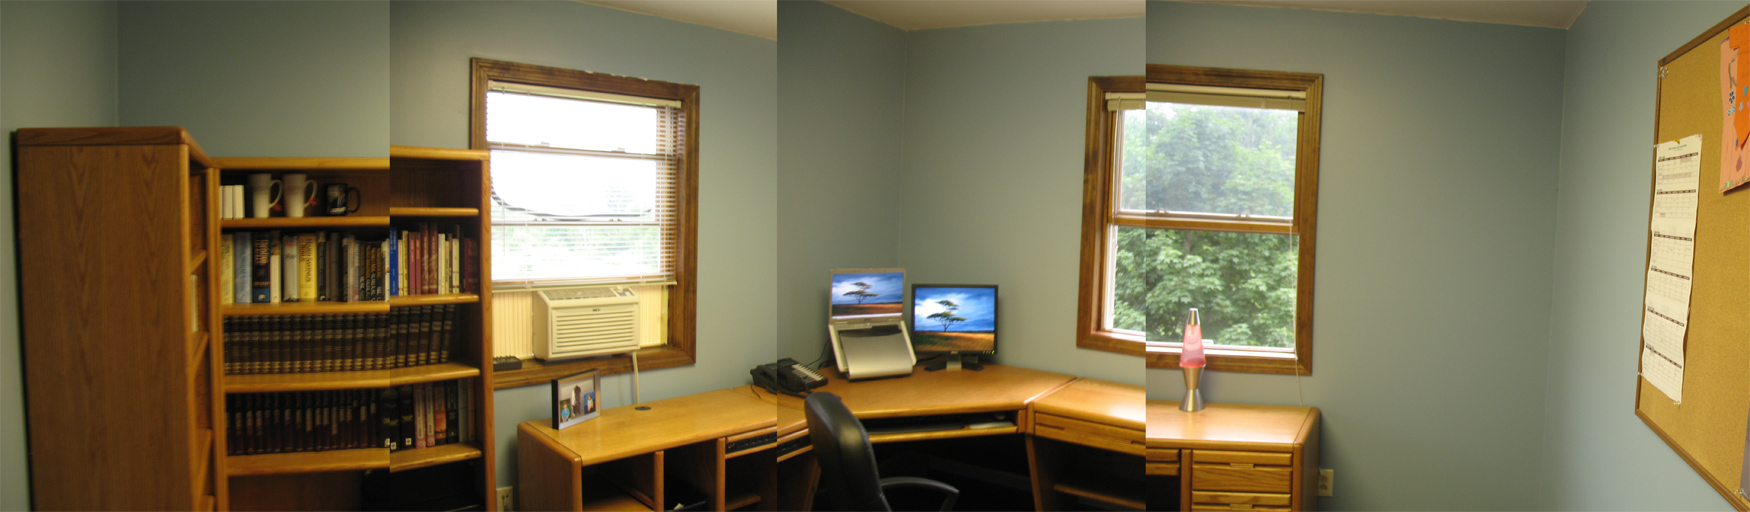 Operation minimalist office complete for Minimalism before and after